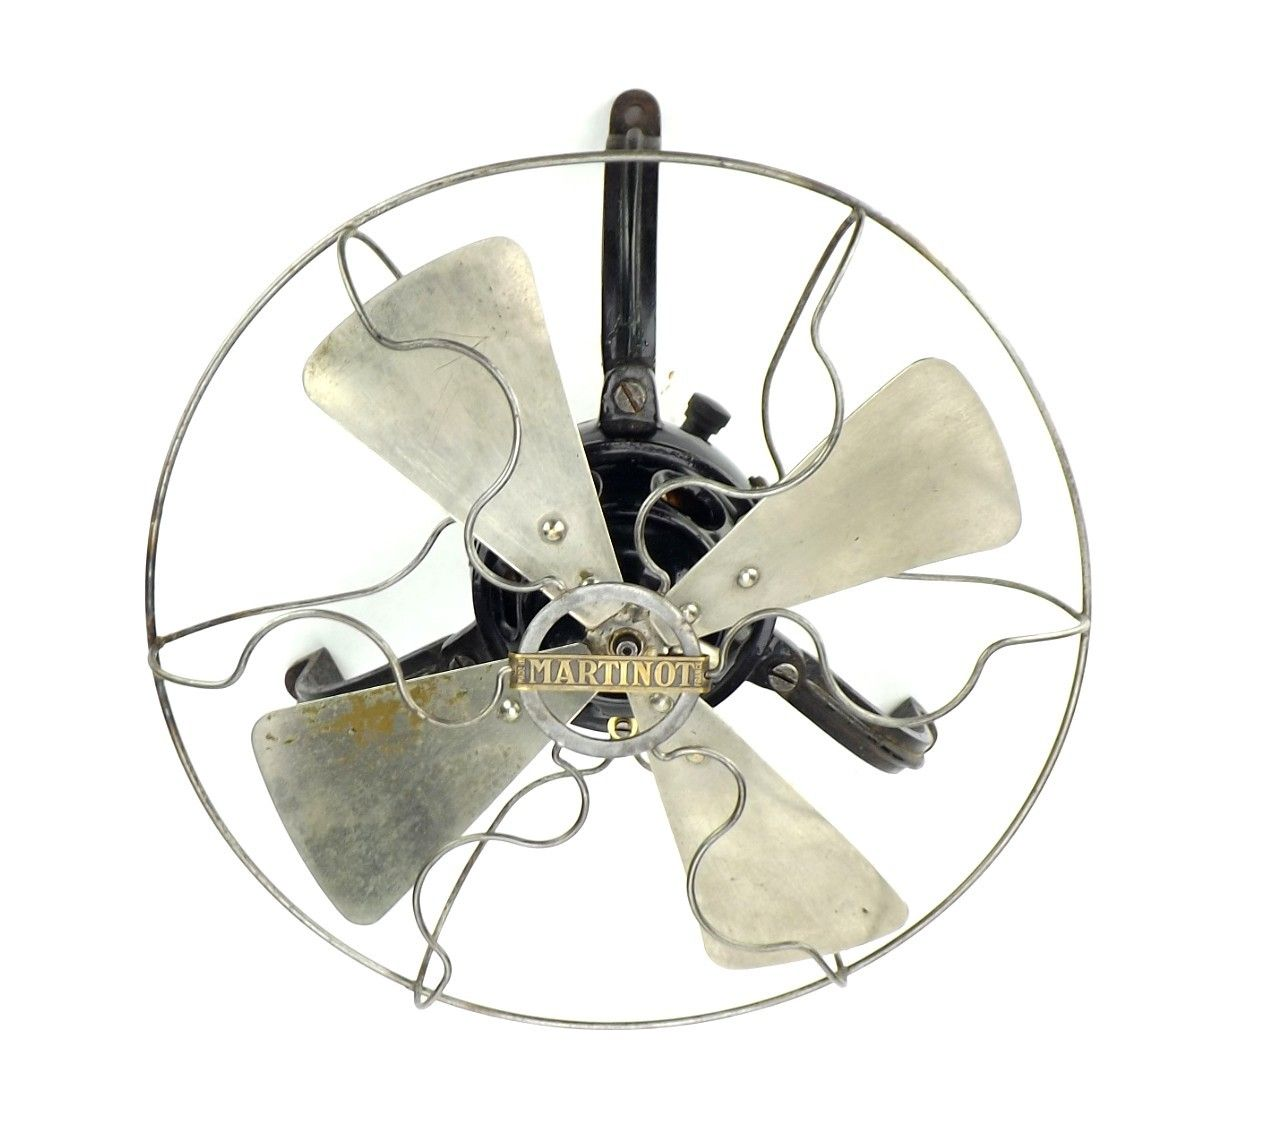 Circa 1910 10 Martinot Ceiling Fan Badged Thomson Houston Paris Ceiling Fan Fan Ceiling Fans For Sale